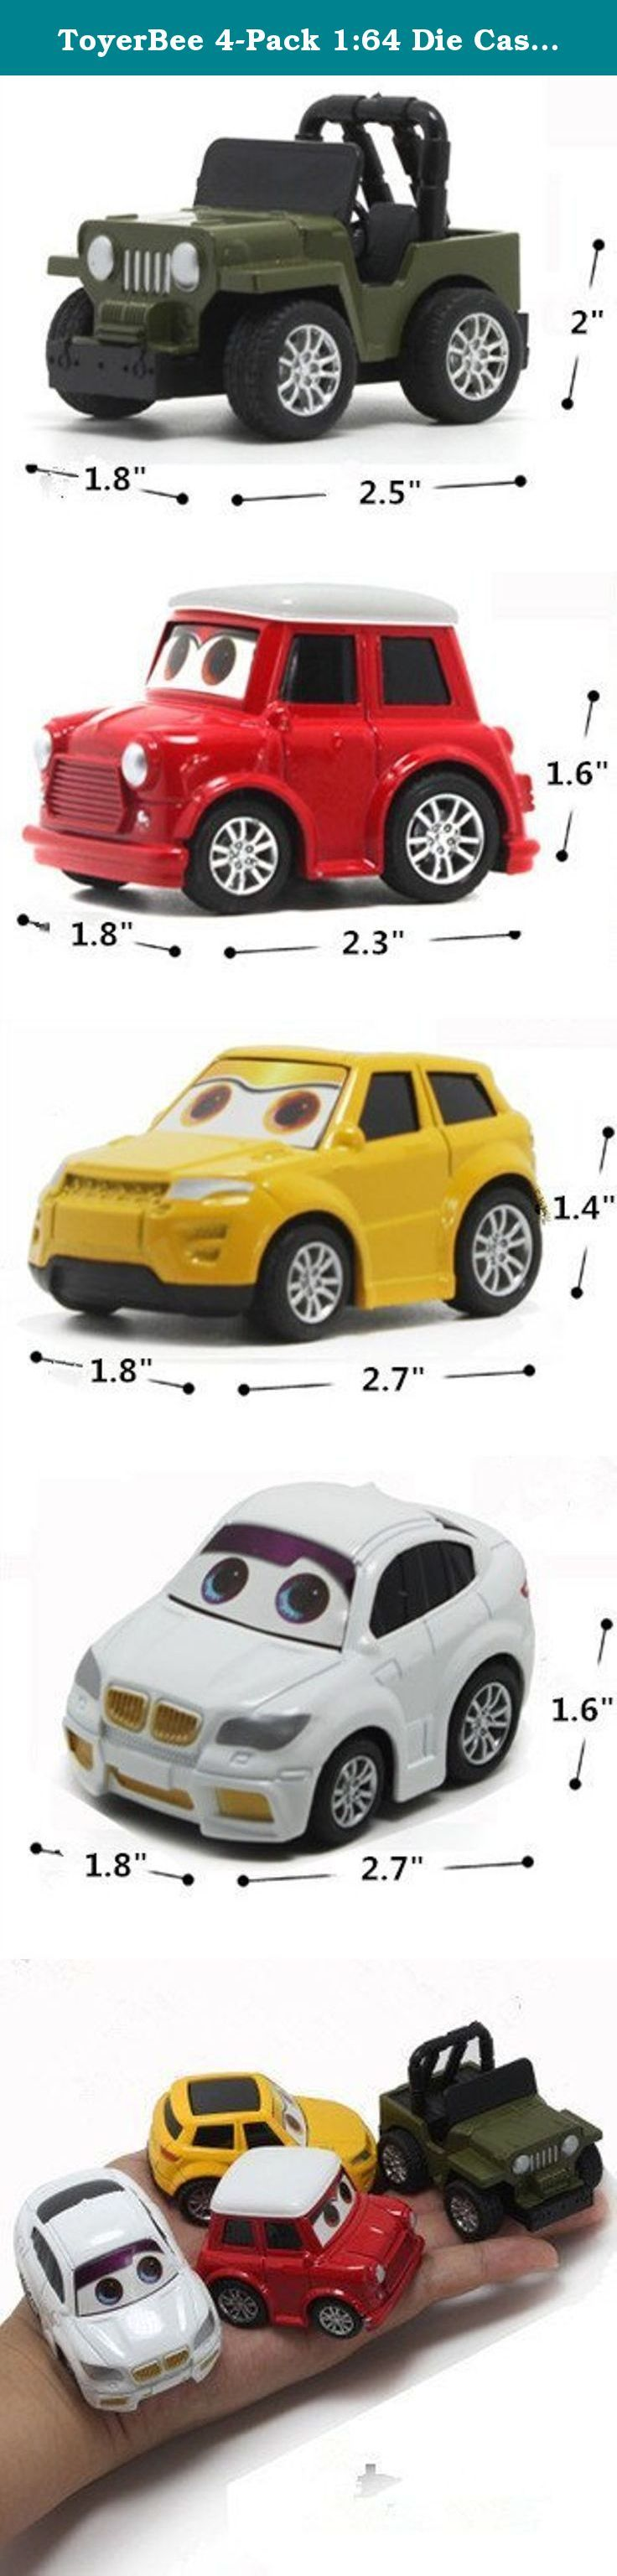 ToyerBee 4-Pack 1:64 Die Cast Cars Pull Back Racer Cars Toy Play Vehicle Set. How to play 1. Pull the car back on the floor, release and watch it racing across the room. 2. Idea for collecting. 3. Not only promotes fun and imagination, but also teaches your child about new areas for vehicles and so on.